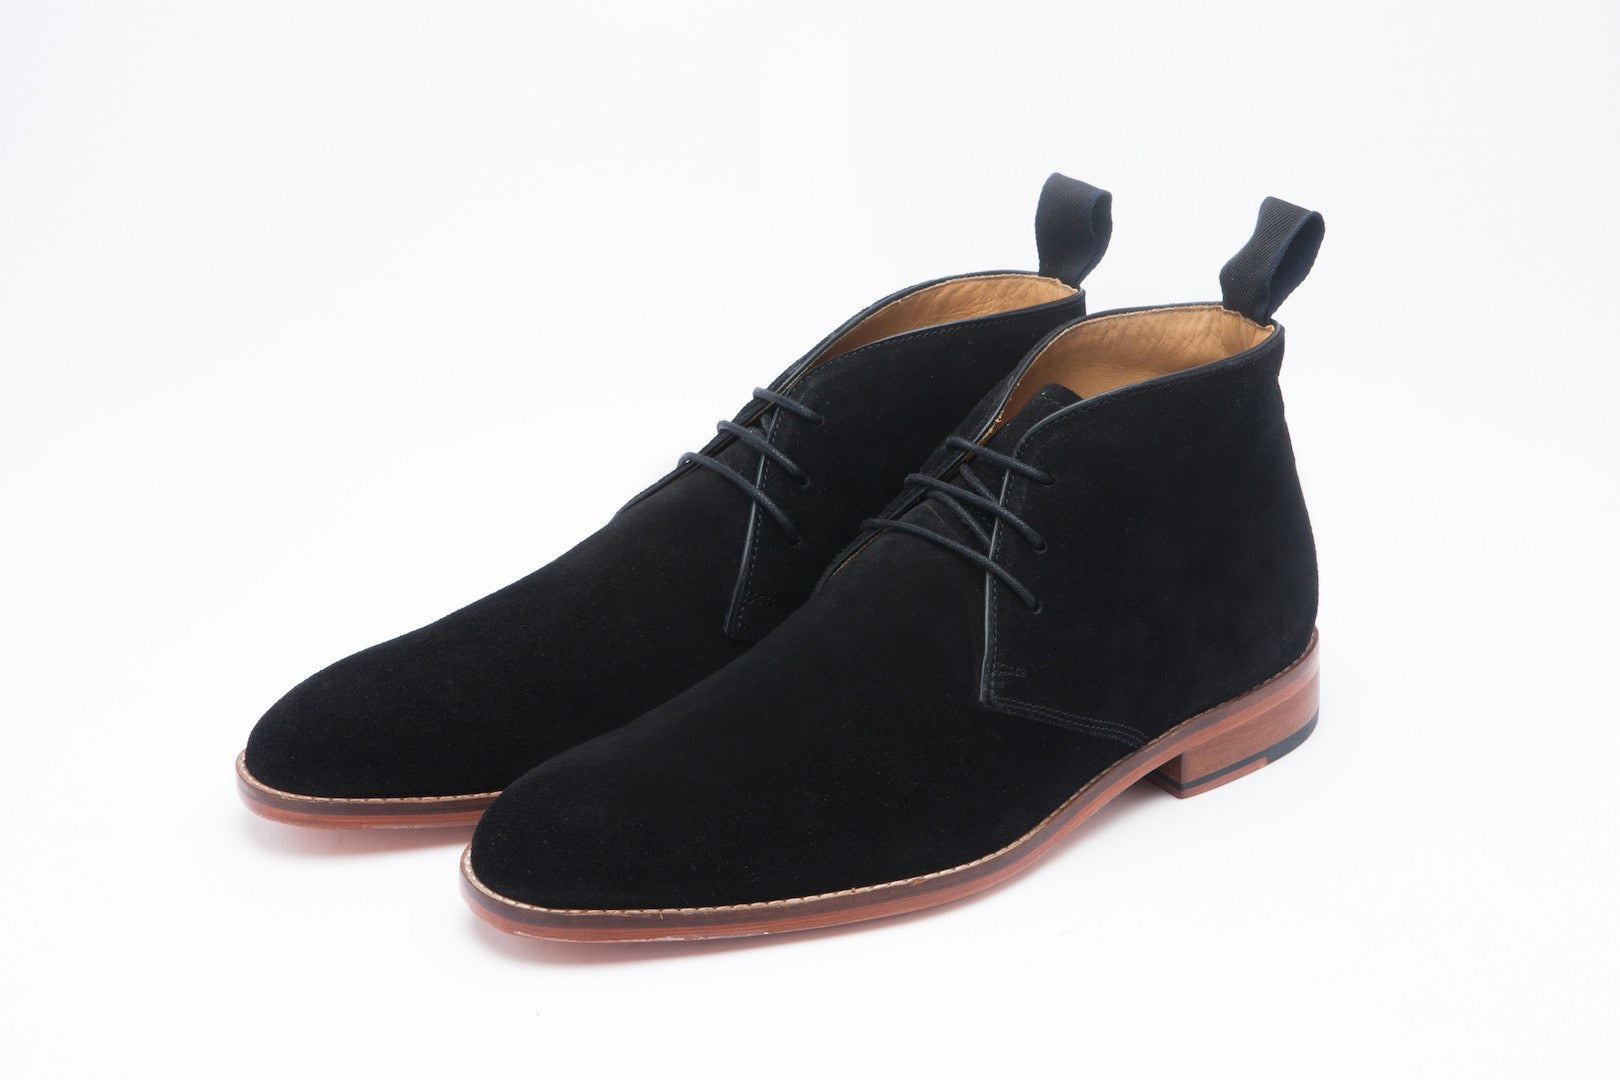 Boots - Chukka Boot - Black Suede